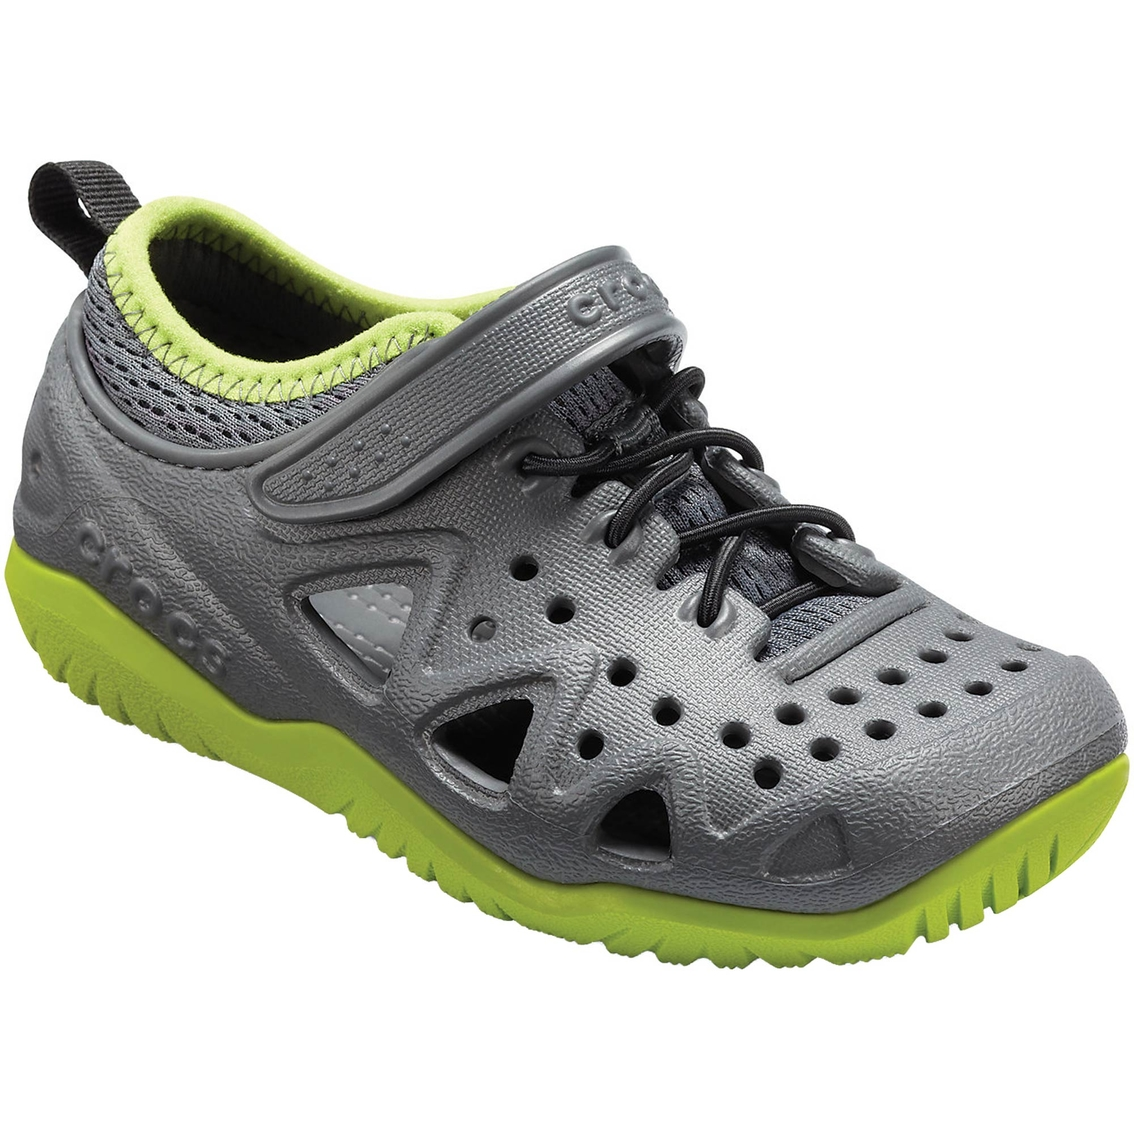 9f387bdaefd2 Crocs Boys Swiftwater Play Shoes